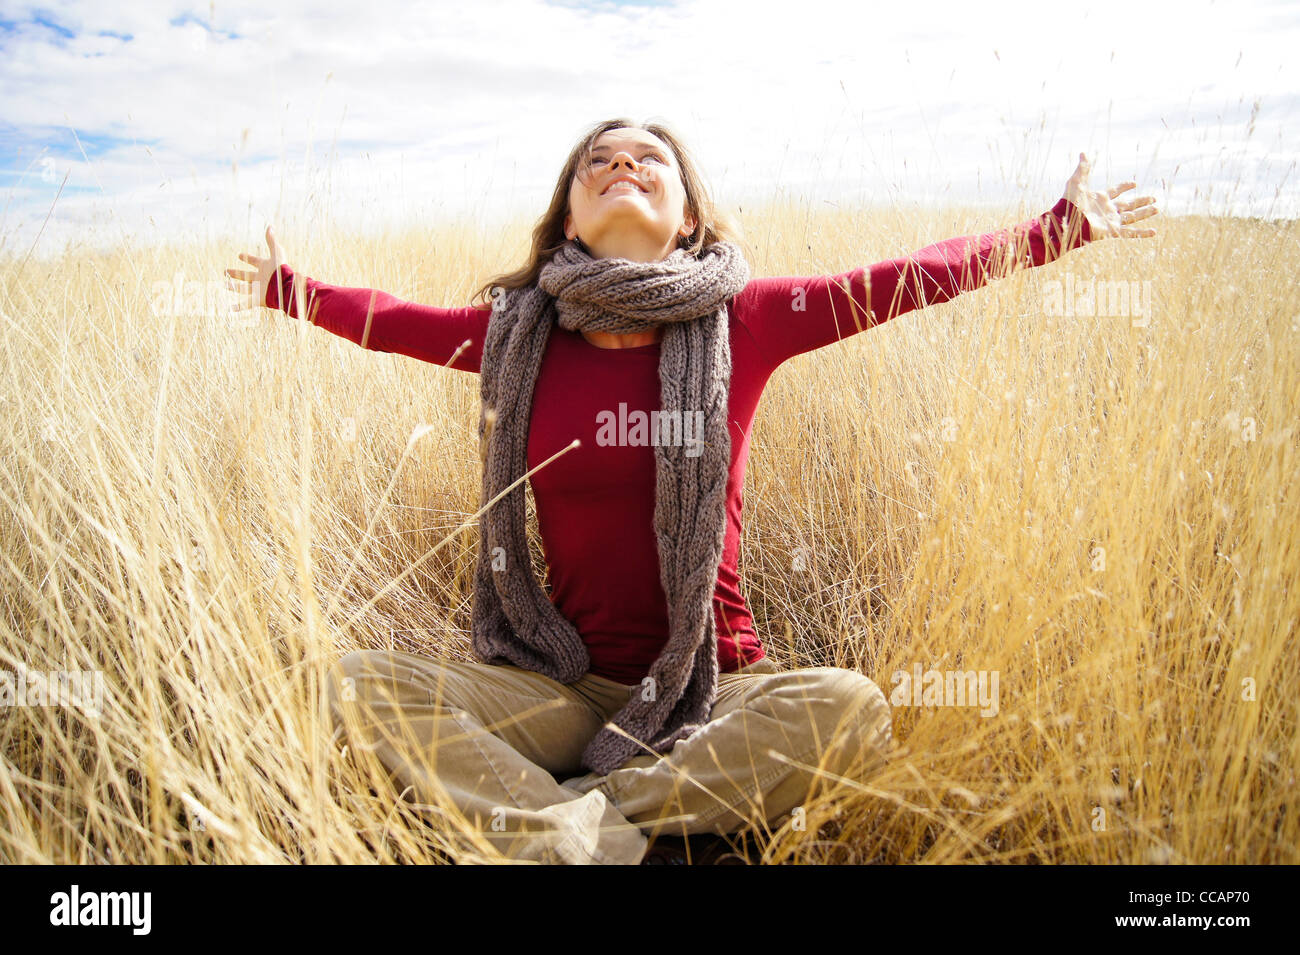 Beautiful young woman spreading her hands with joy and happiness while sitting in the long grass of autumn field - Stock Image